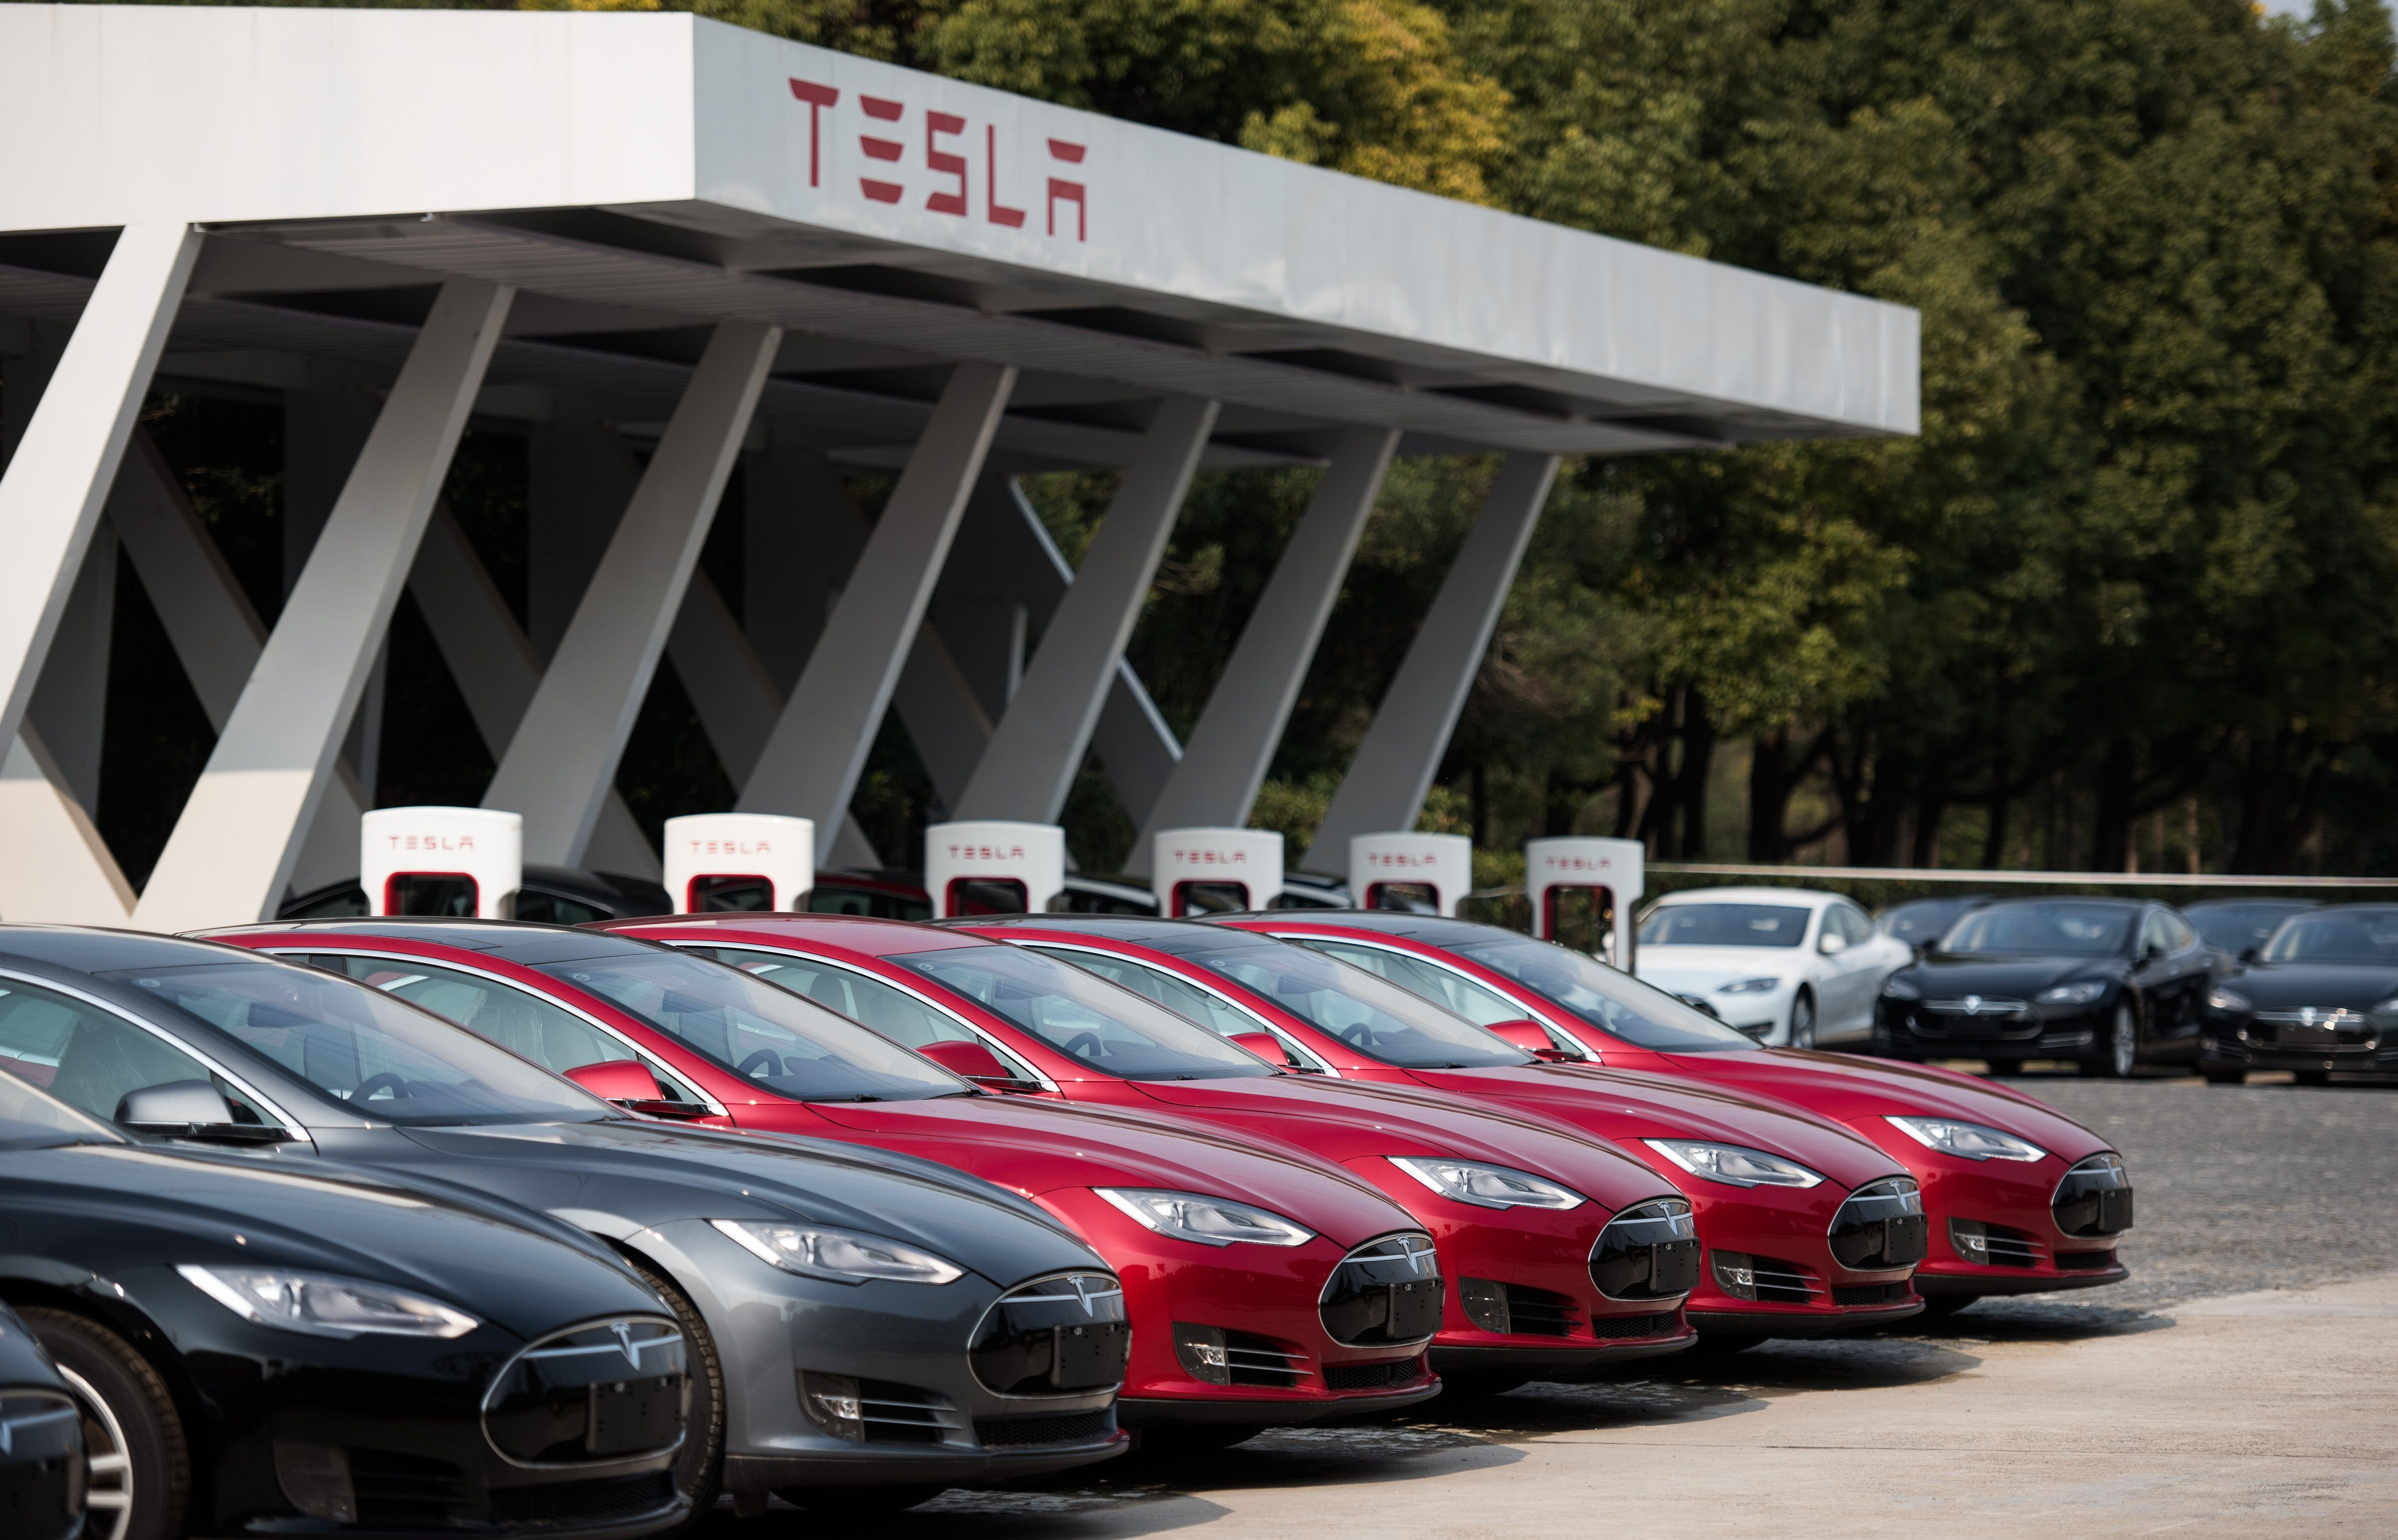 Tesla Model S vehicles parked outside a car dealership in Shanghai on March 17, 2015.